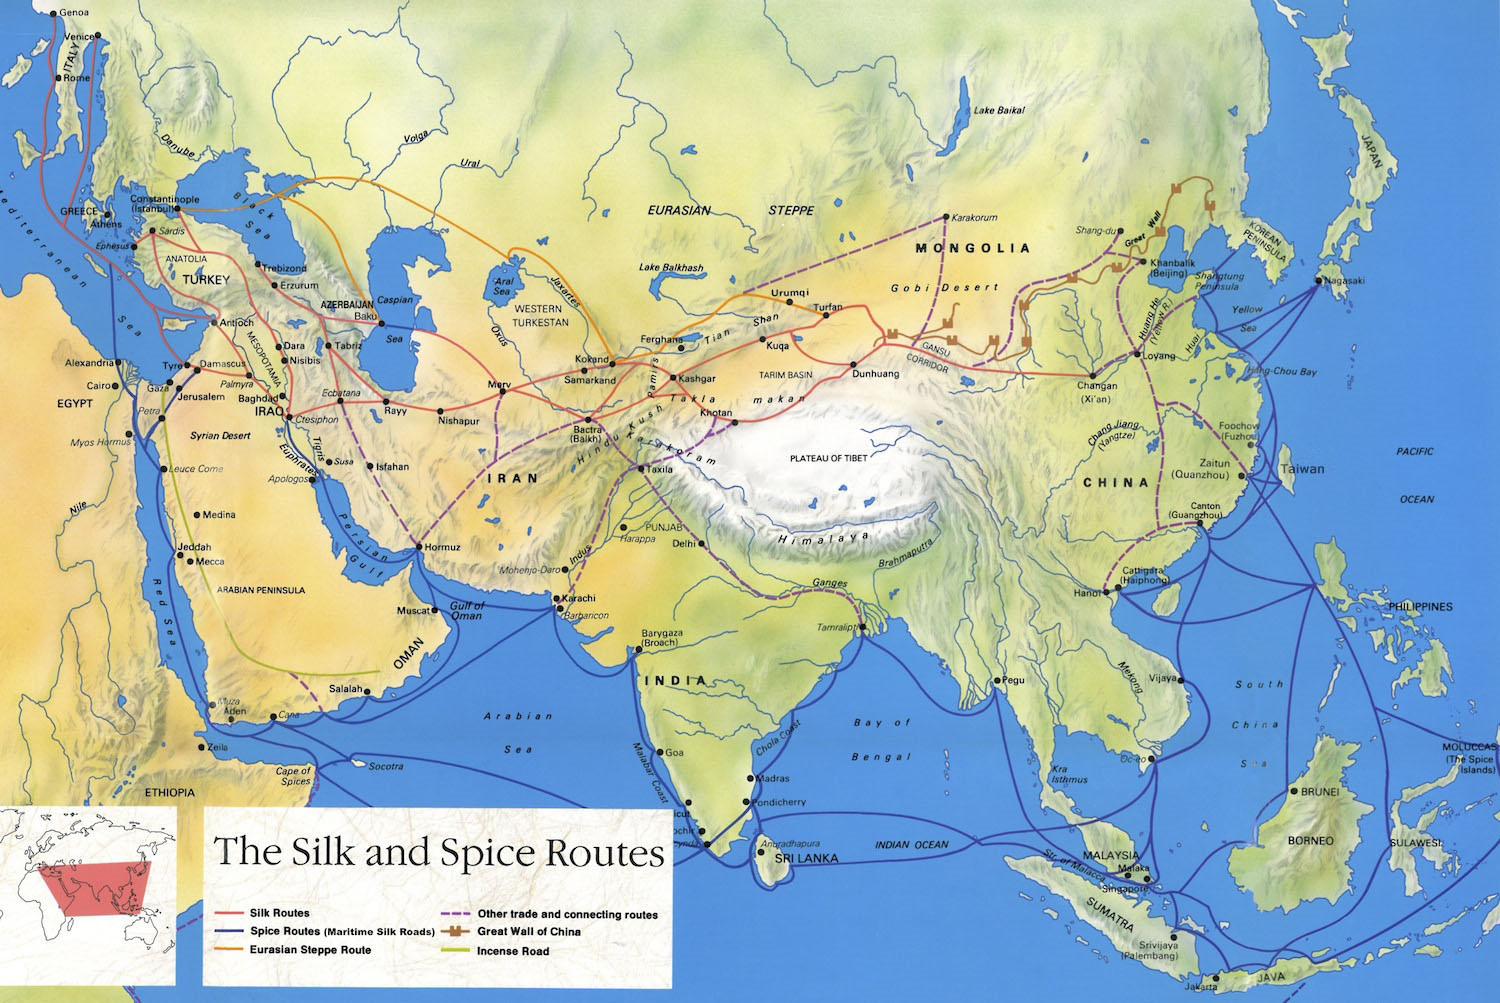 Silk Road Map Silk Road Maps 2019   Useful map of the ancient Silk Road Routes Silk Road Map